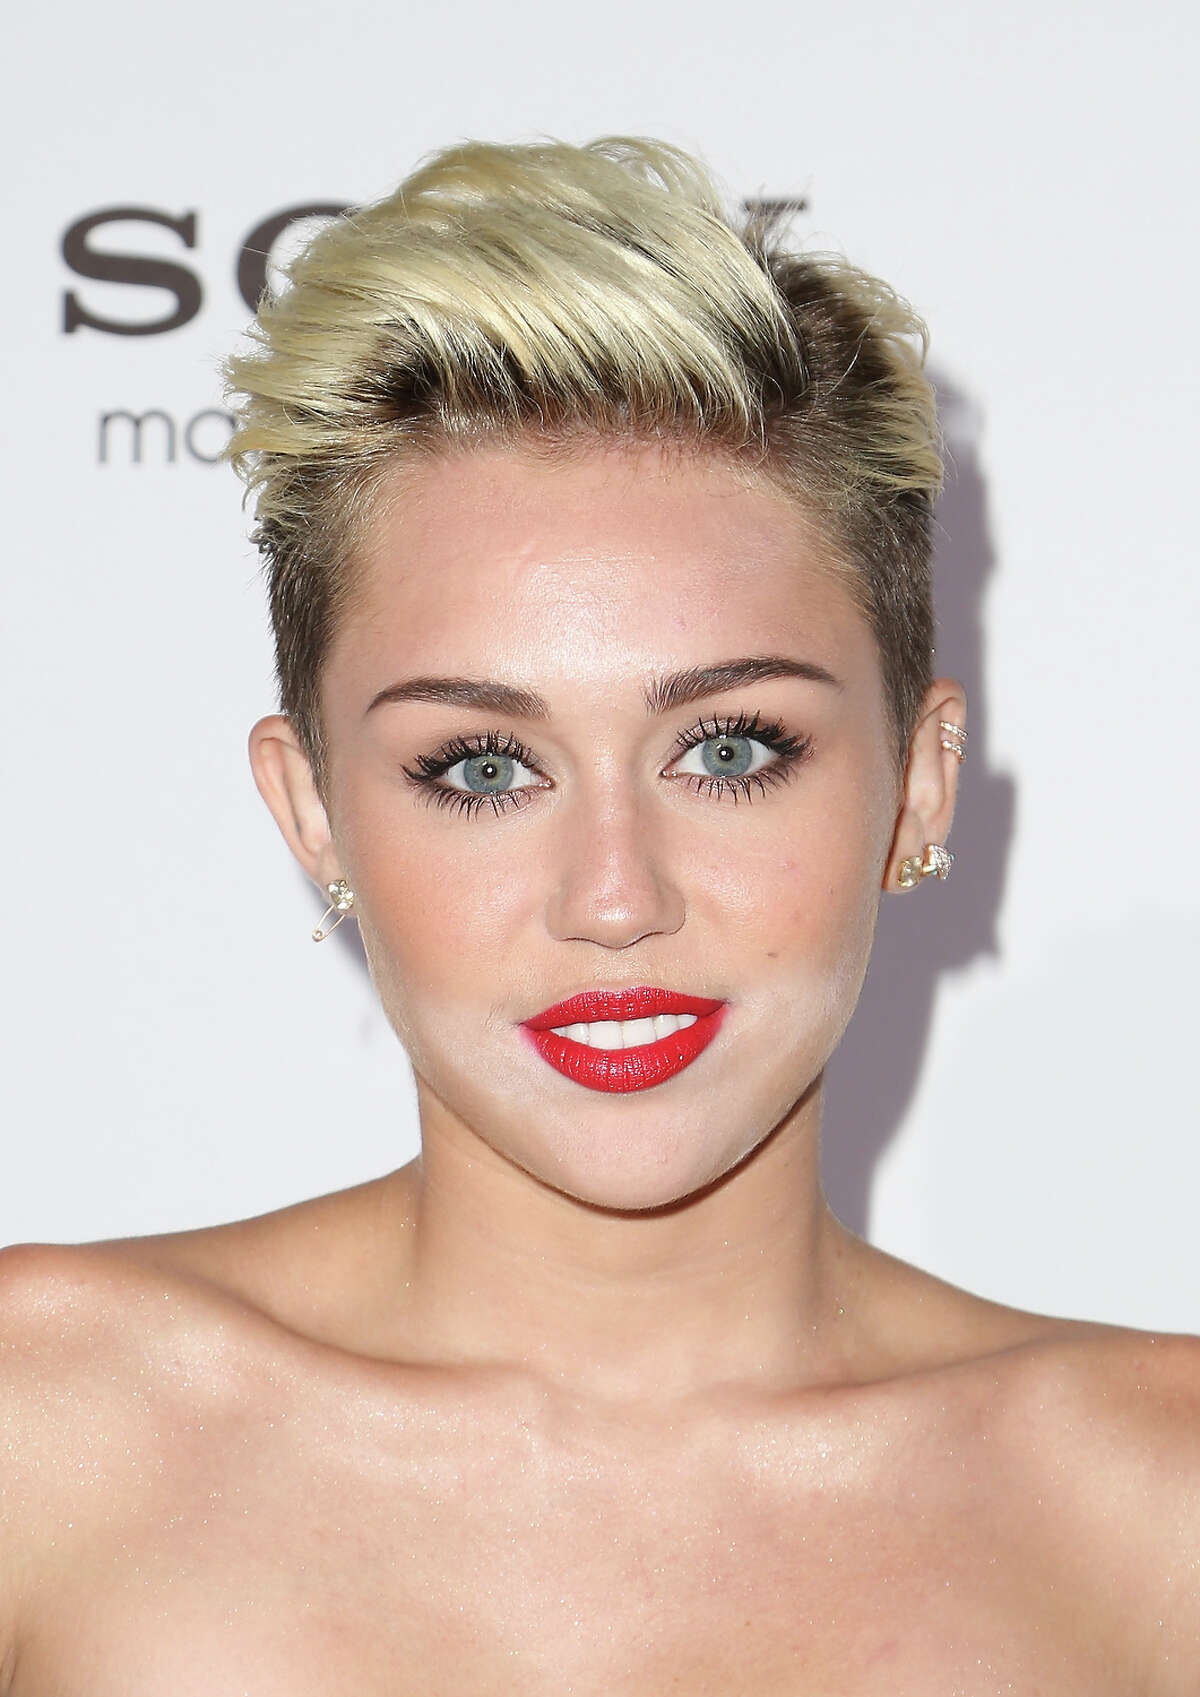 Singer/actress Miley Cyrus arrives for Maxim's Hot 100 Celebration on May 15, 2013 in Hollywood, California.